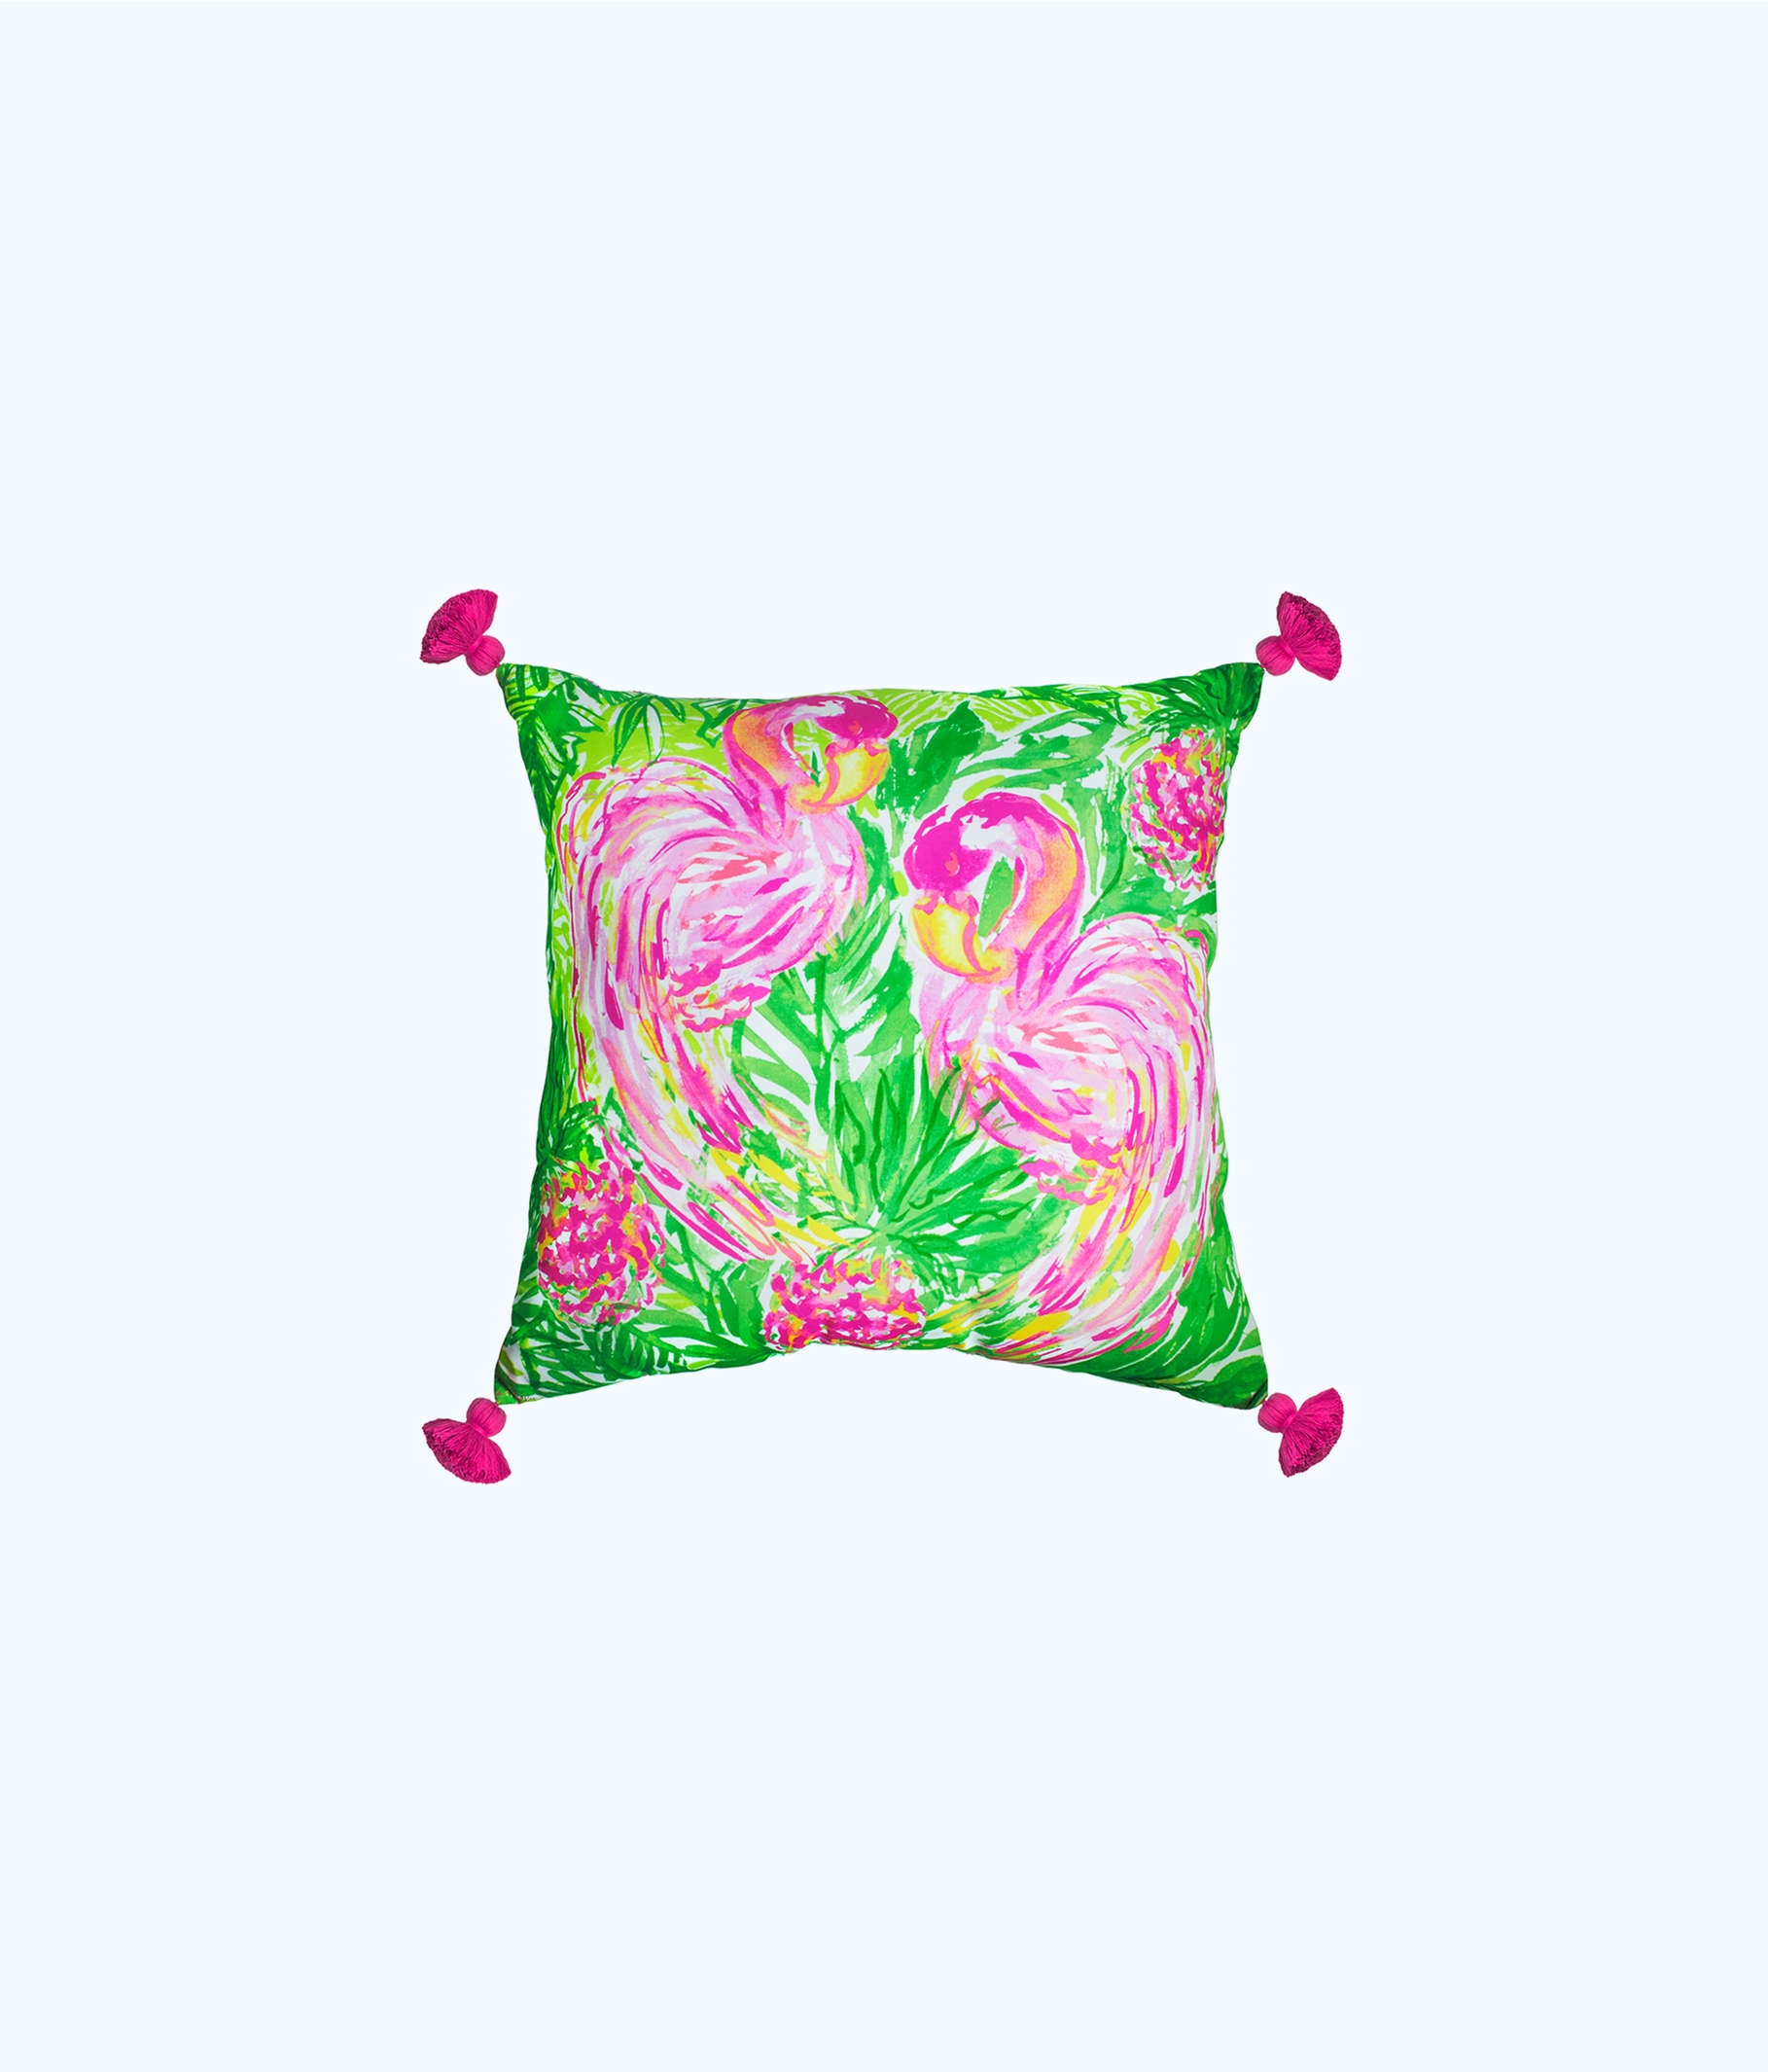 Extra Large Indoor/Outdoor Pillow | 500940 | Lilly Pulitzer